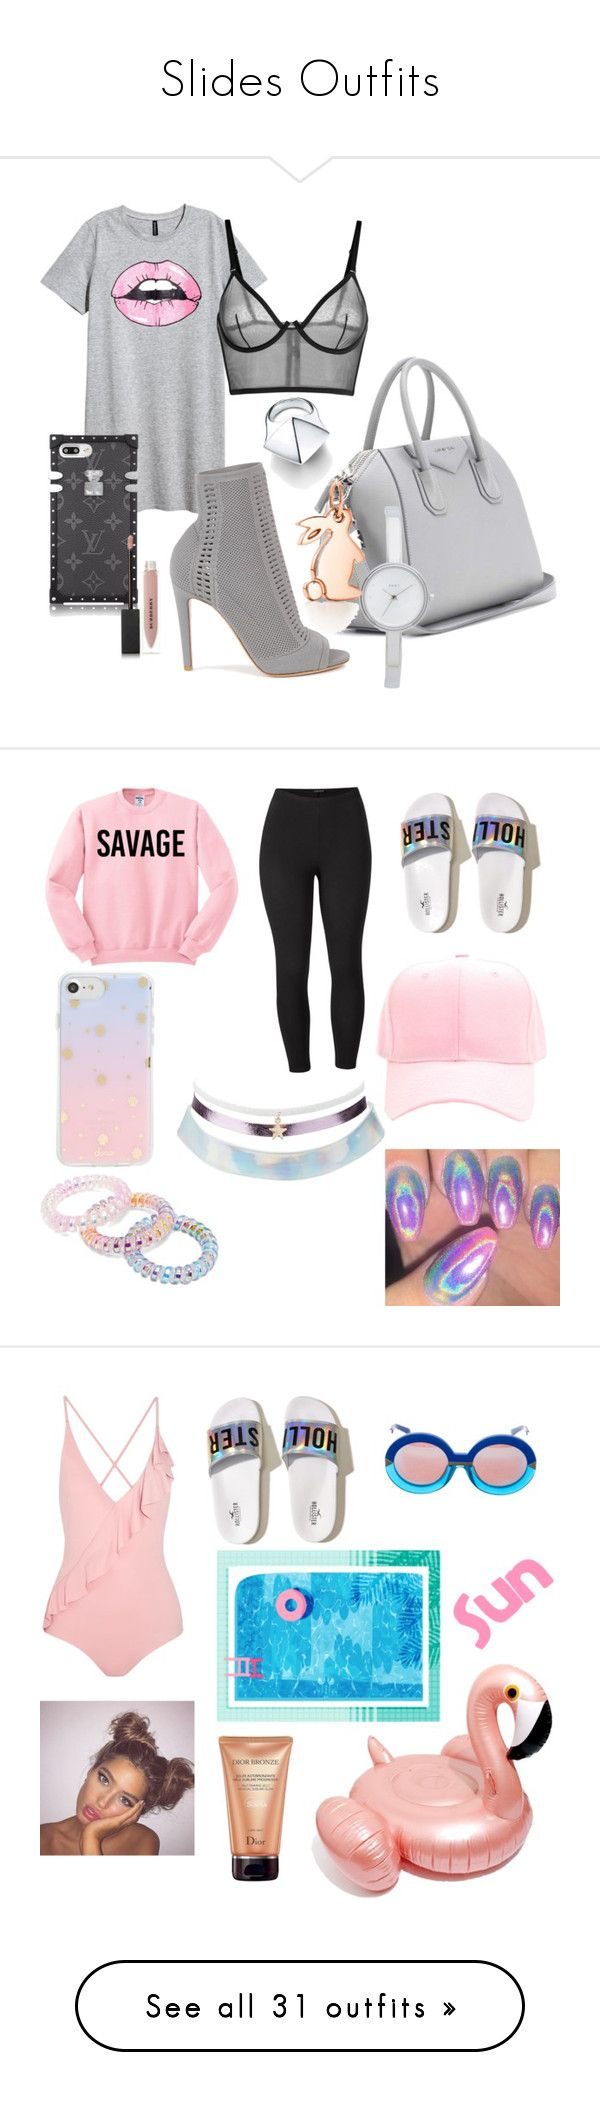 """""""Slides Outfits"""" by malwahl ❤ liked on Polyvore featuring H&M, Gianvito Rossi, Givenchy, Burberry, La Perla, DKNY, Tiffany & Co., shoes, pink with shine and pink metallic shoes"""